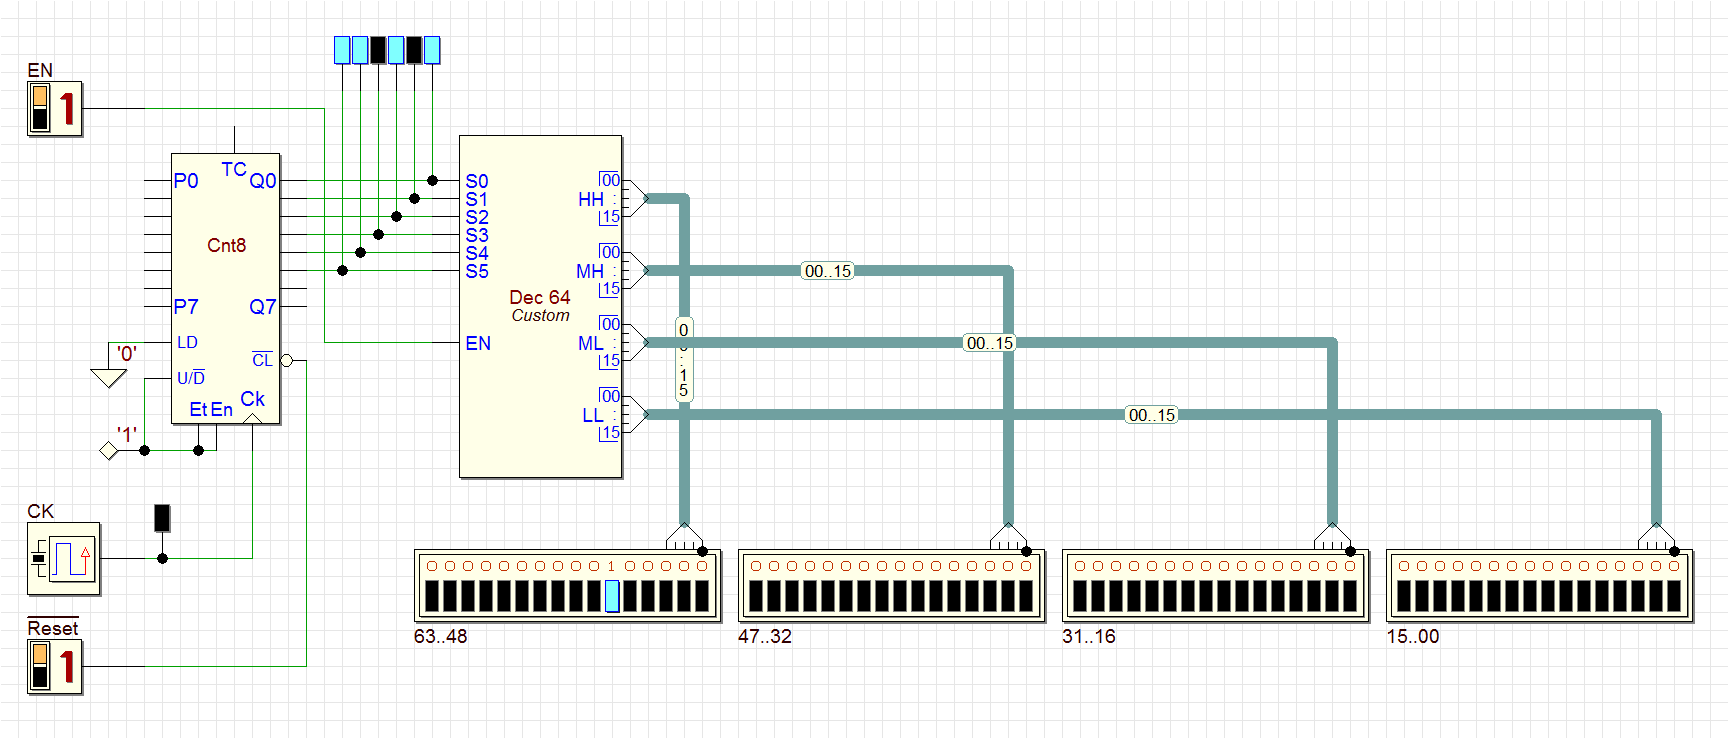 hight resolution of  observe also the activity of the cbe internals simply with a click on the cbe component the cbe viewer will show animated the internal schematic